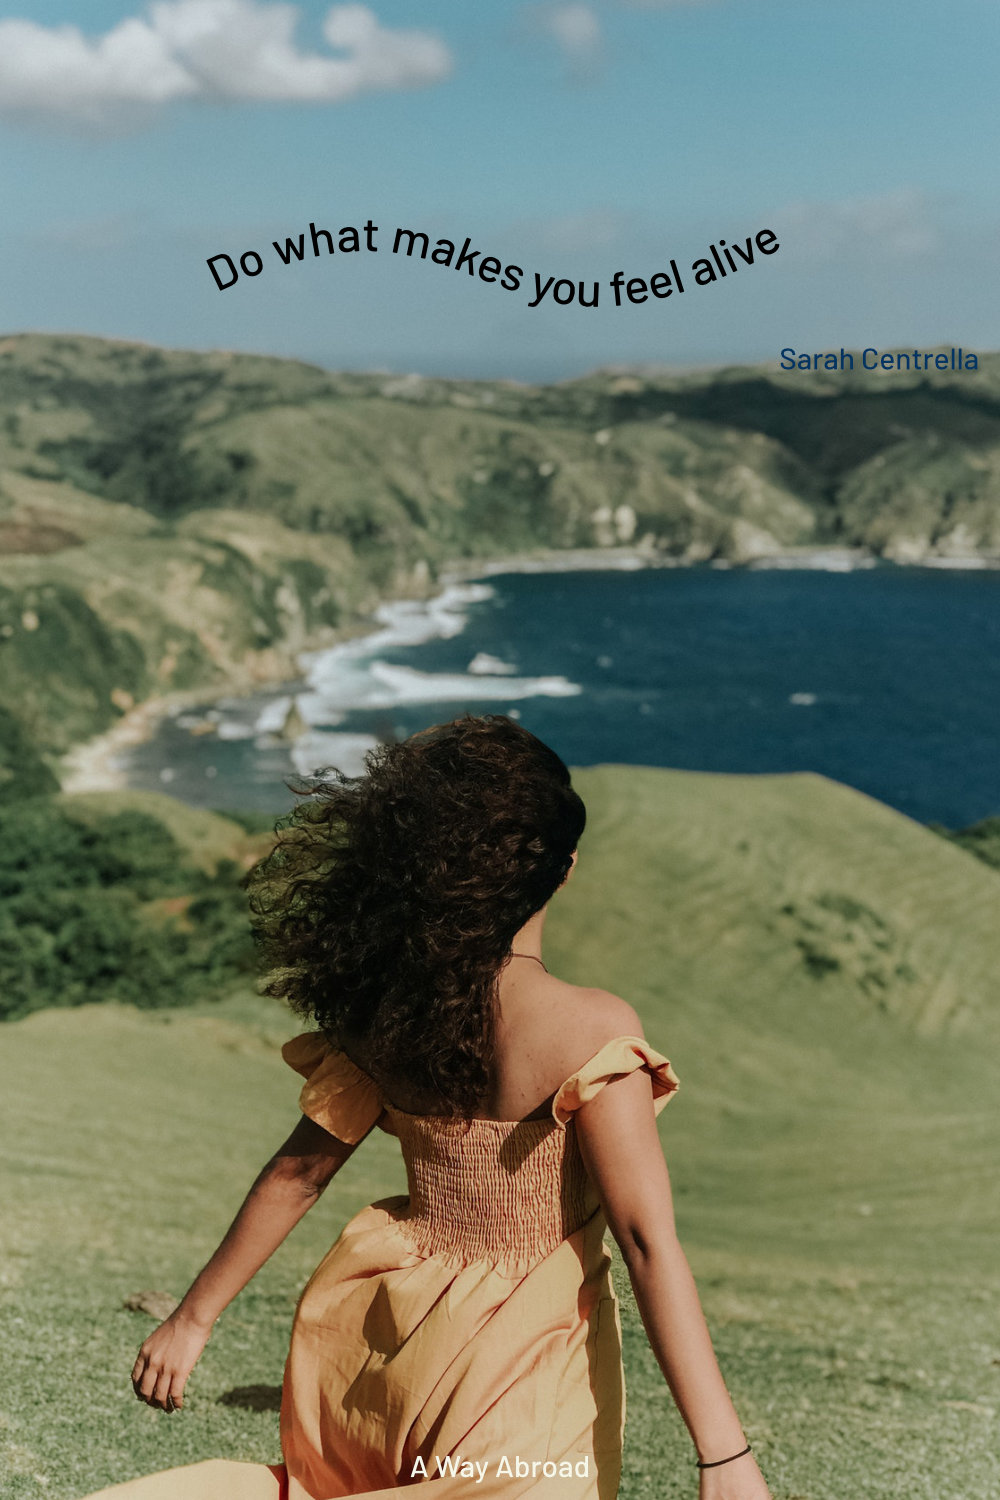 wavy wanderlust travel quote over a travel picture of a woman looking at the coast